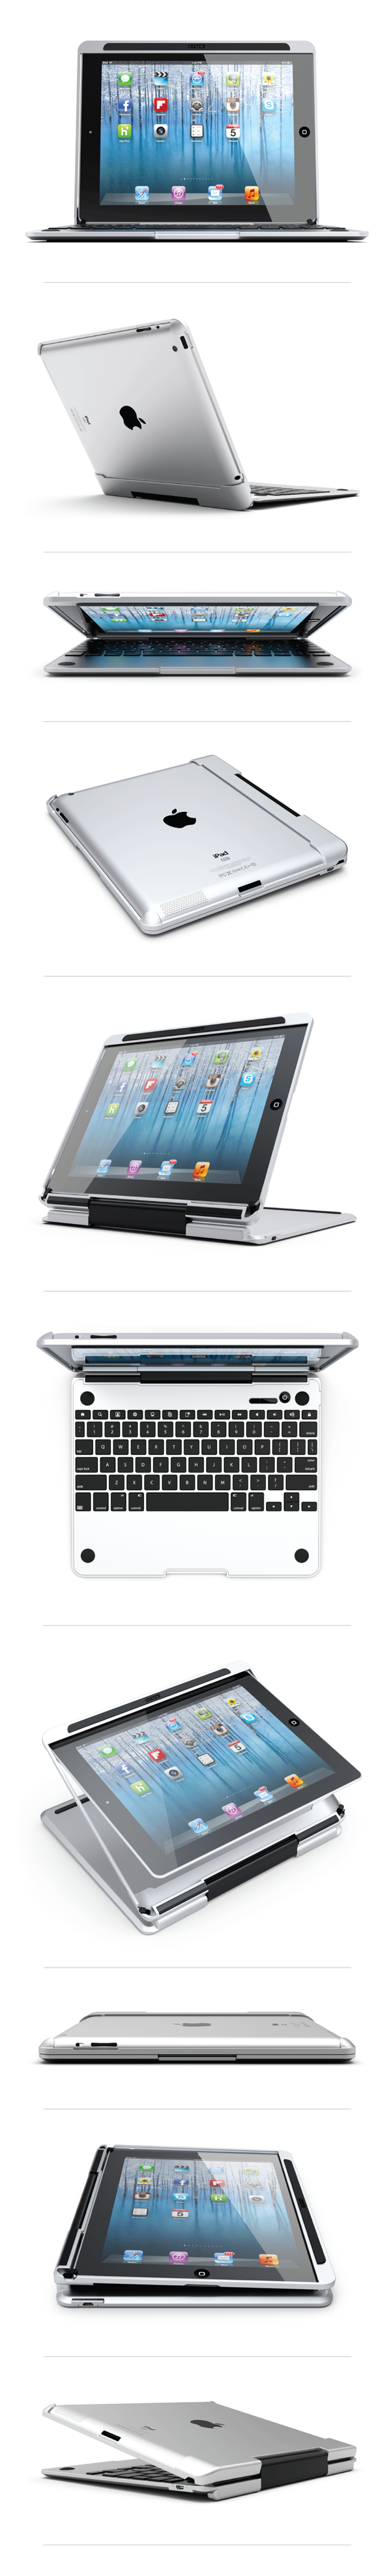 Turn Your iPad Into a Laptop With the Cruxskunk Keyboard Case - Enpundit